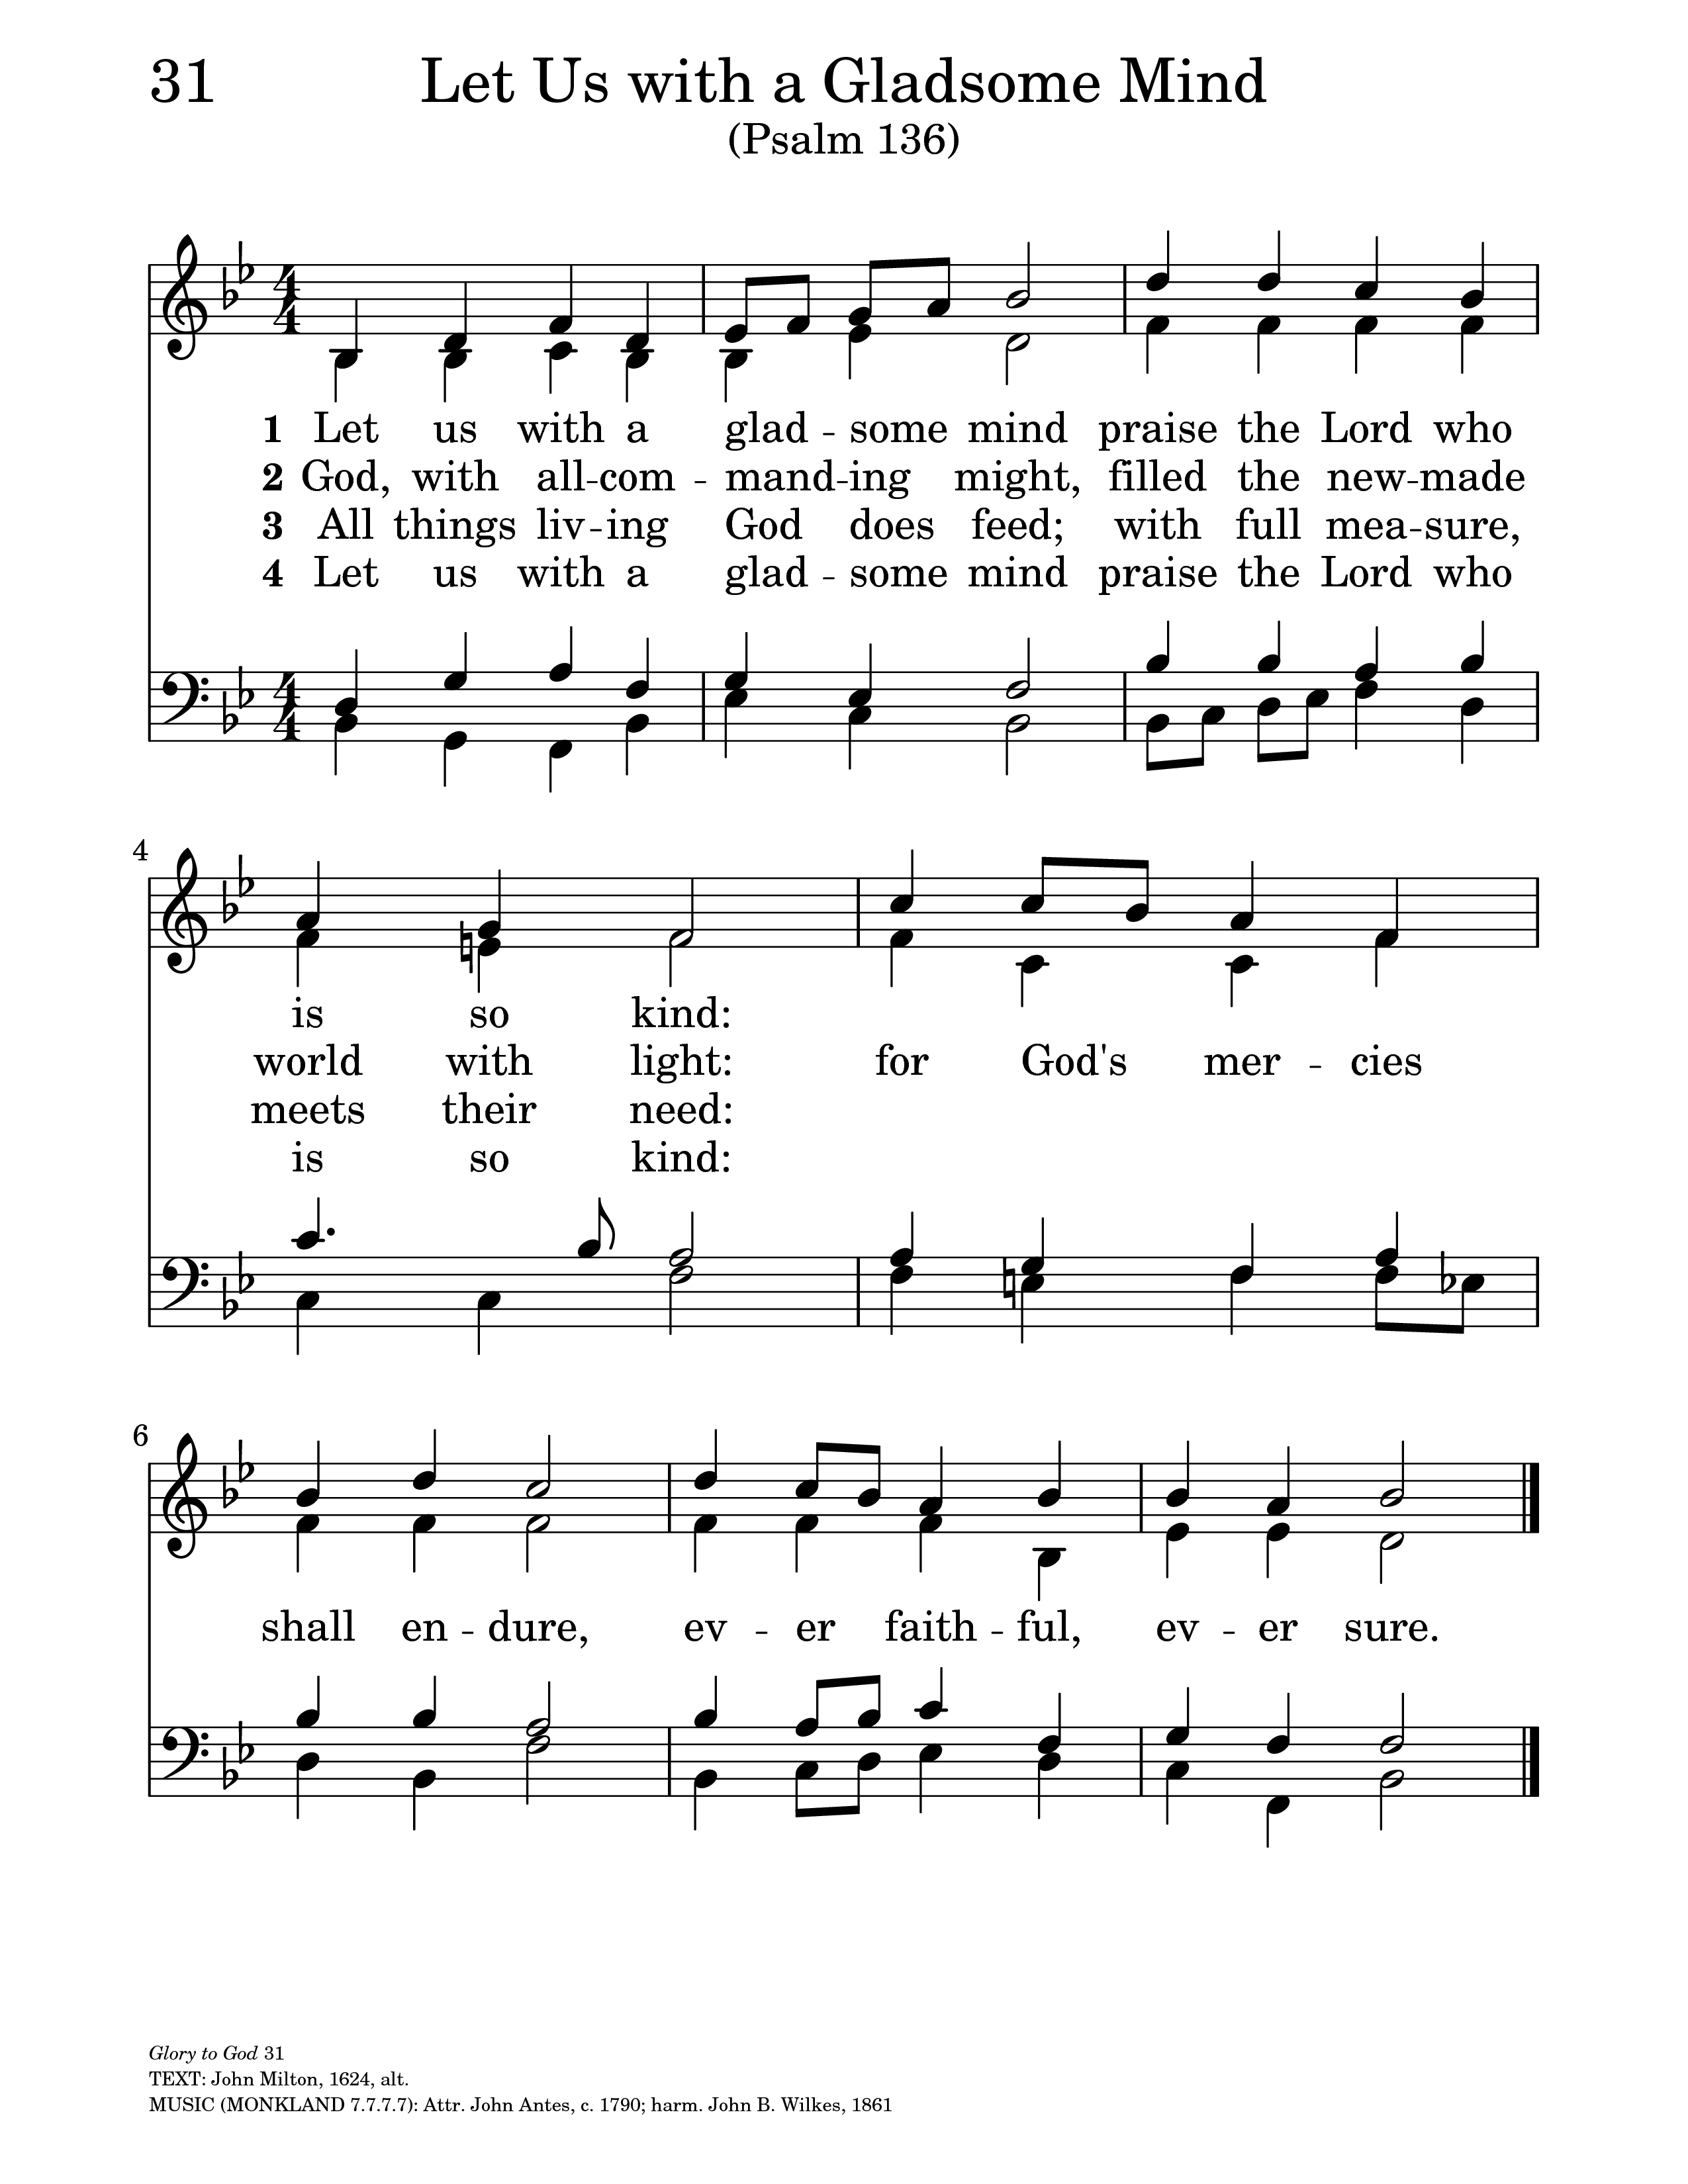 Let us with gladsome mind hymnary general settings hexwebz Choice Image